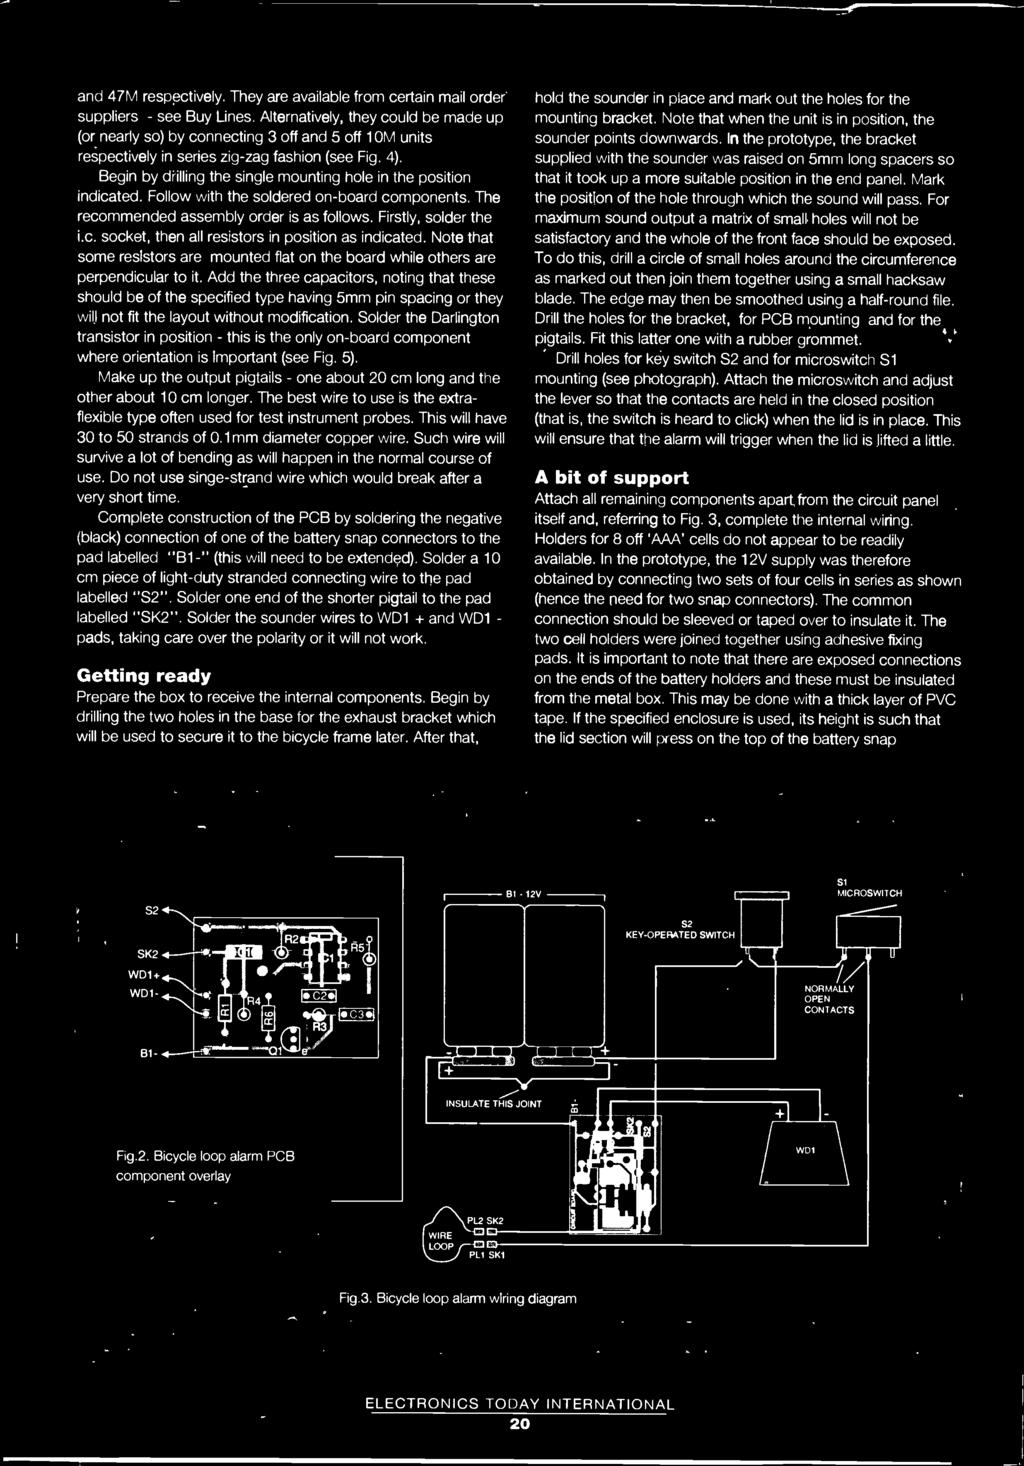 M Mory Alloys Shape Lips Electronics Today International Of The 1986 Fiat X1 9 Rear Tail Stop Fuse Box Diagram Begin By Drilling Single Mounting Hole In Position Indicated Follow With Soldered